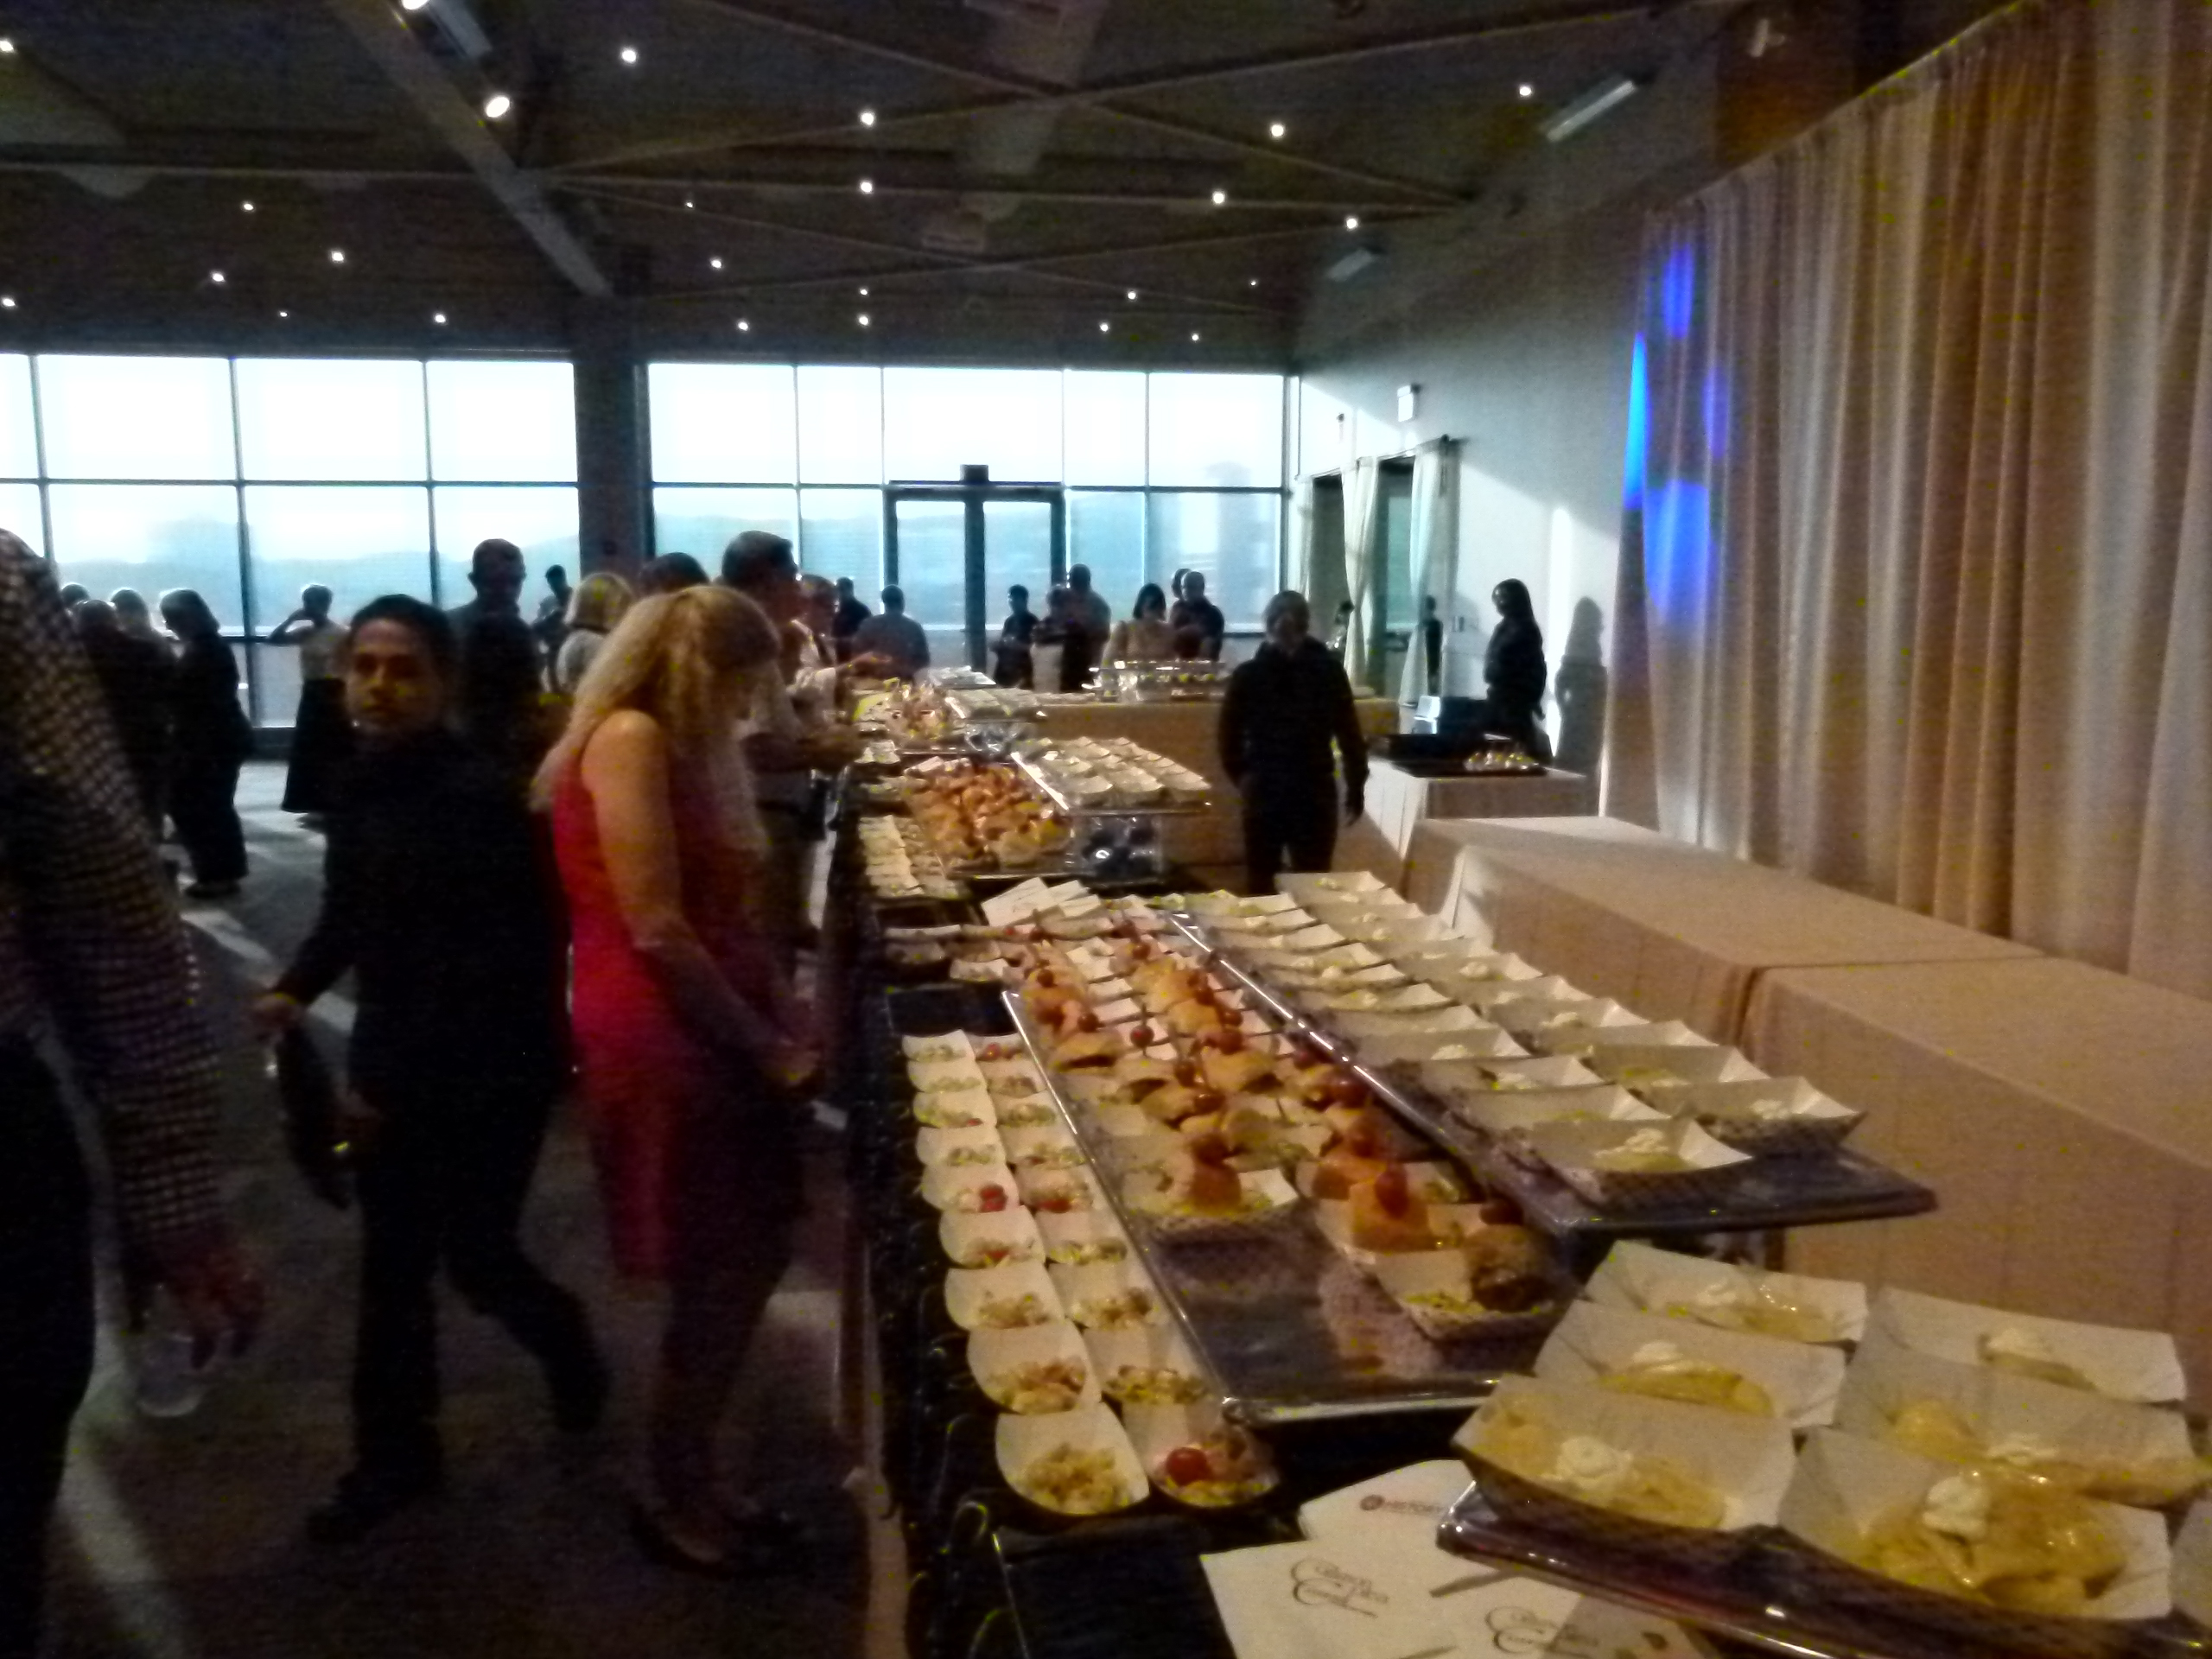 The buffet ran almost the entire length of the room.